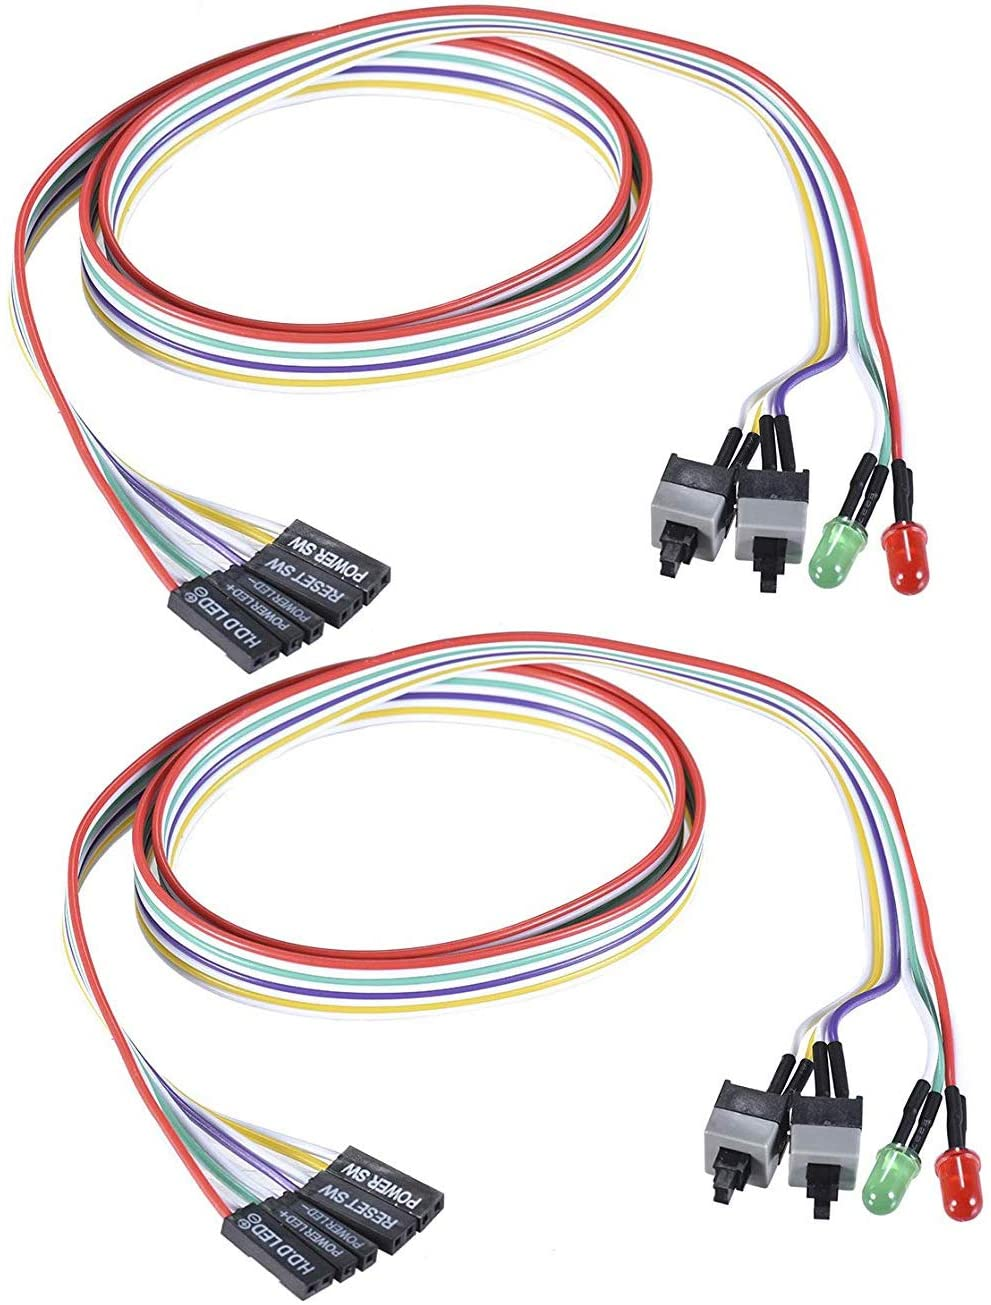 Warmstor 2-Pack Computer Case LED Light Red Green ATX Power Supply Reset HDD Switch Cable 27-inch Long ATX Case Front Bezel Wire Kit